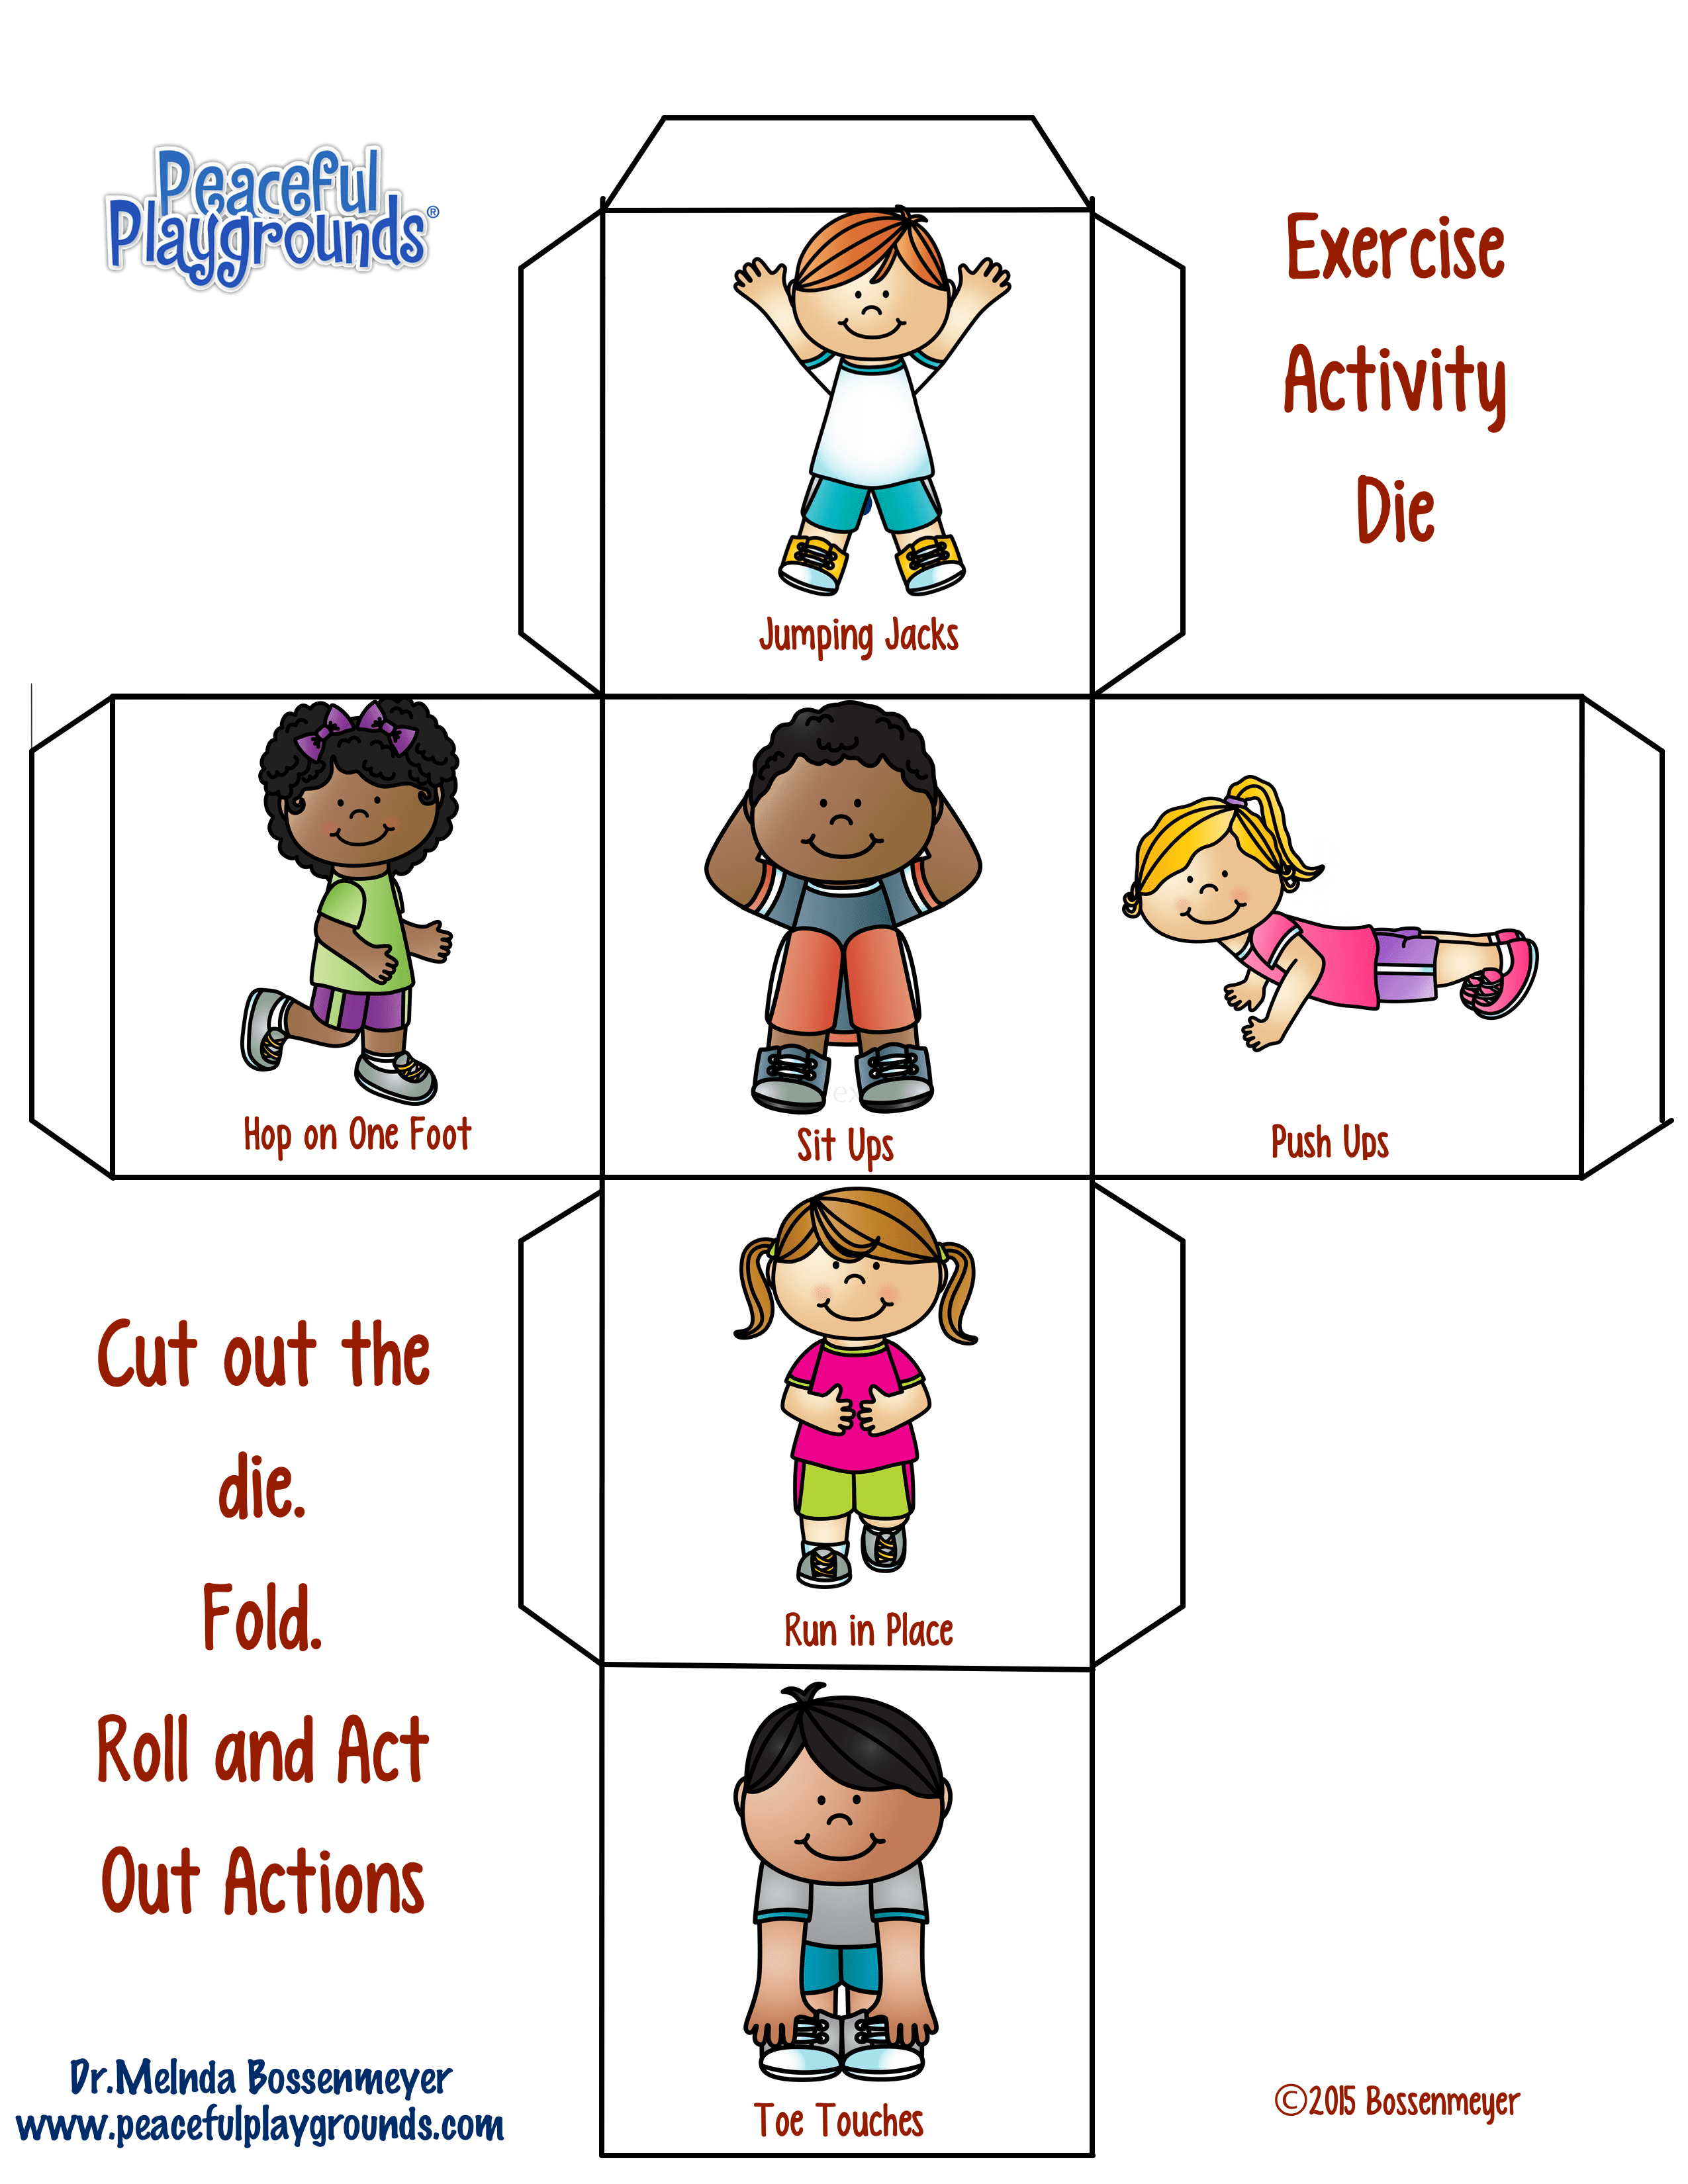 Exercise Game Dice Peaceful Playgrounds